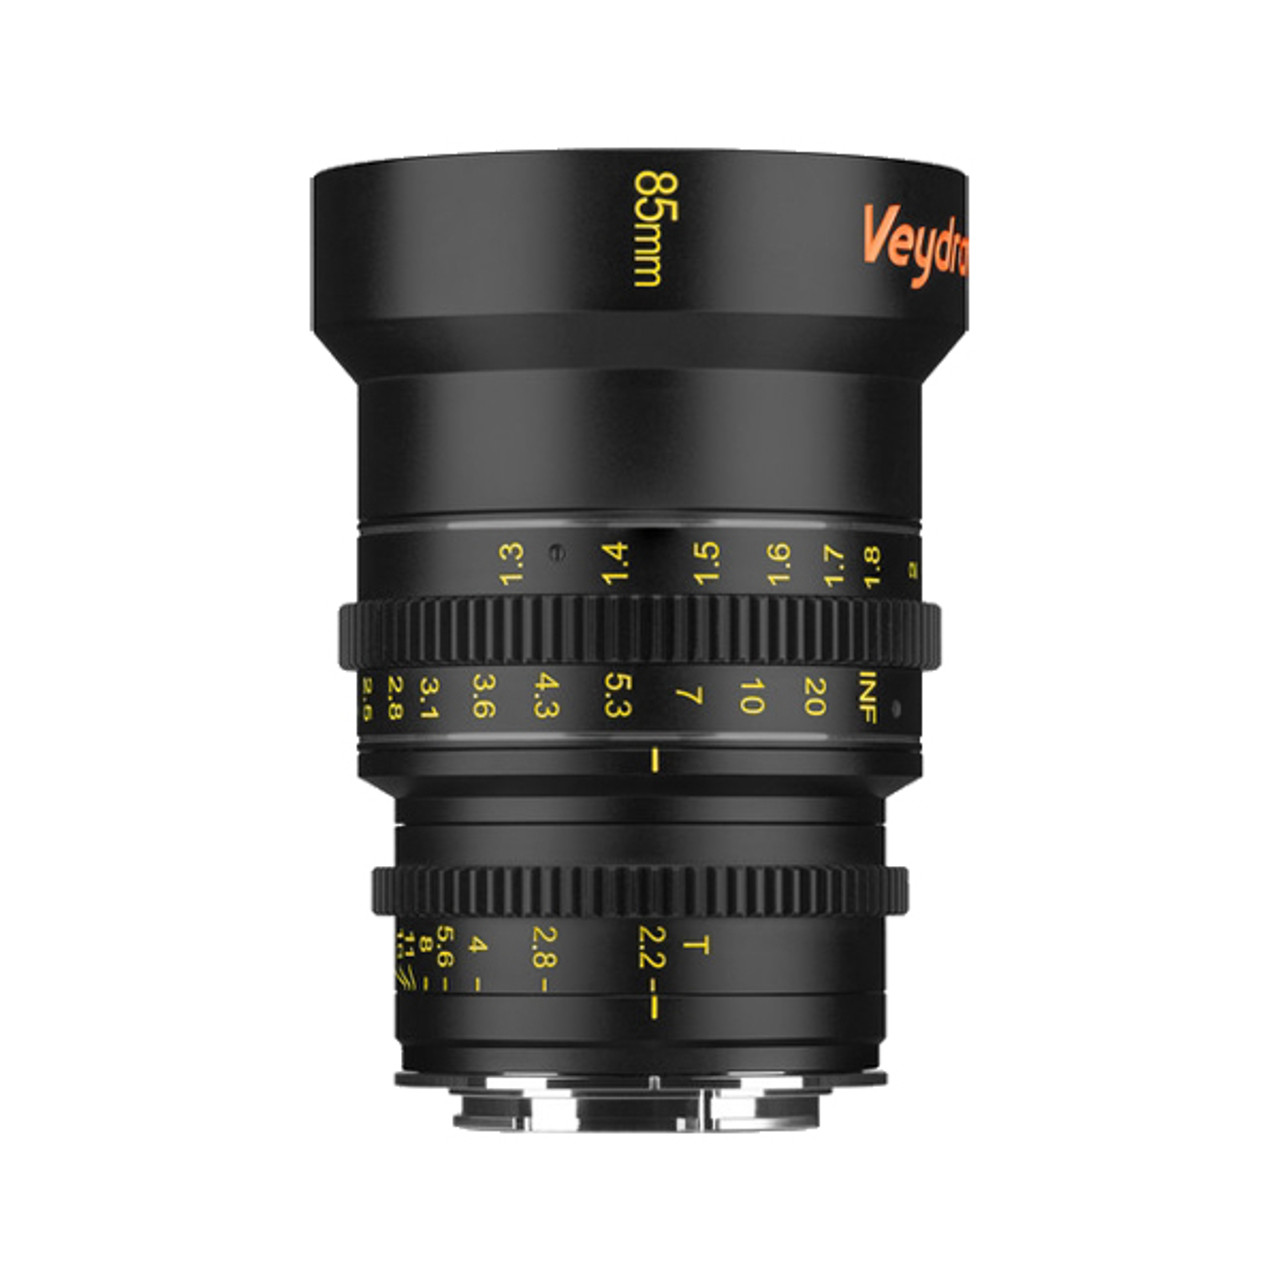 Veydra Mini Prime 85mm T2.2 Sony E-Mount